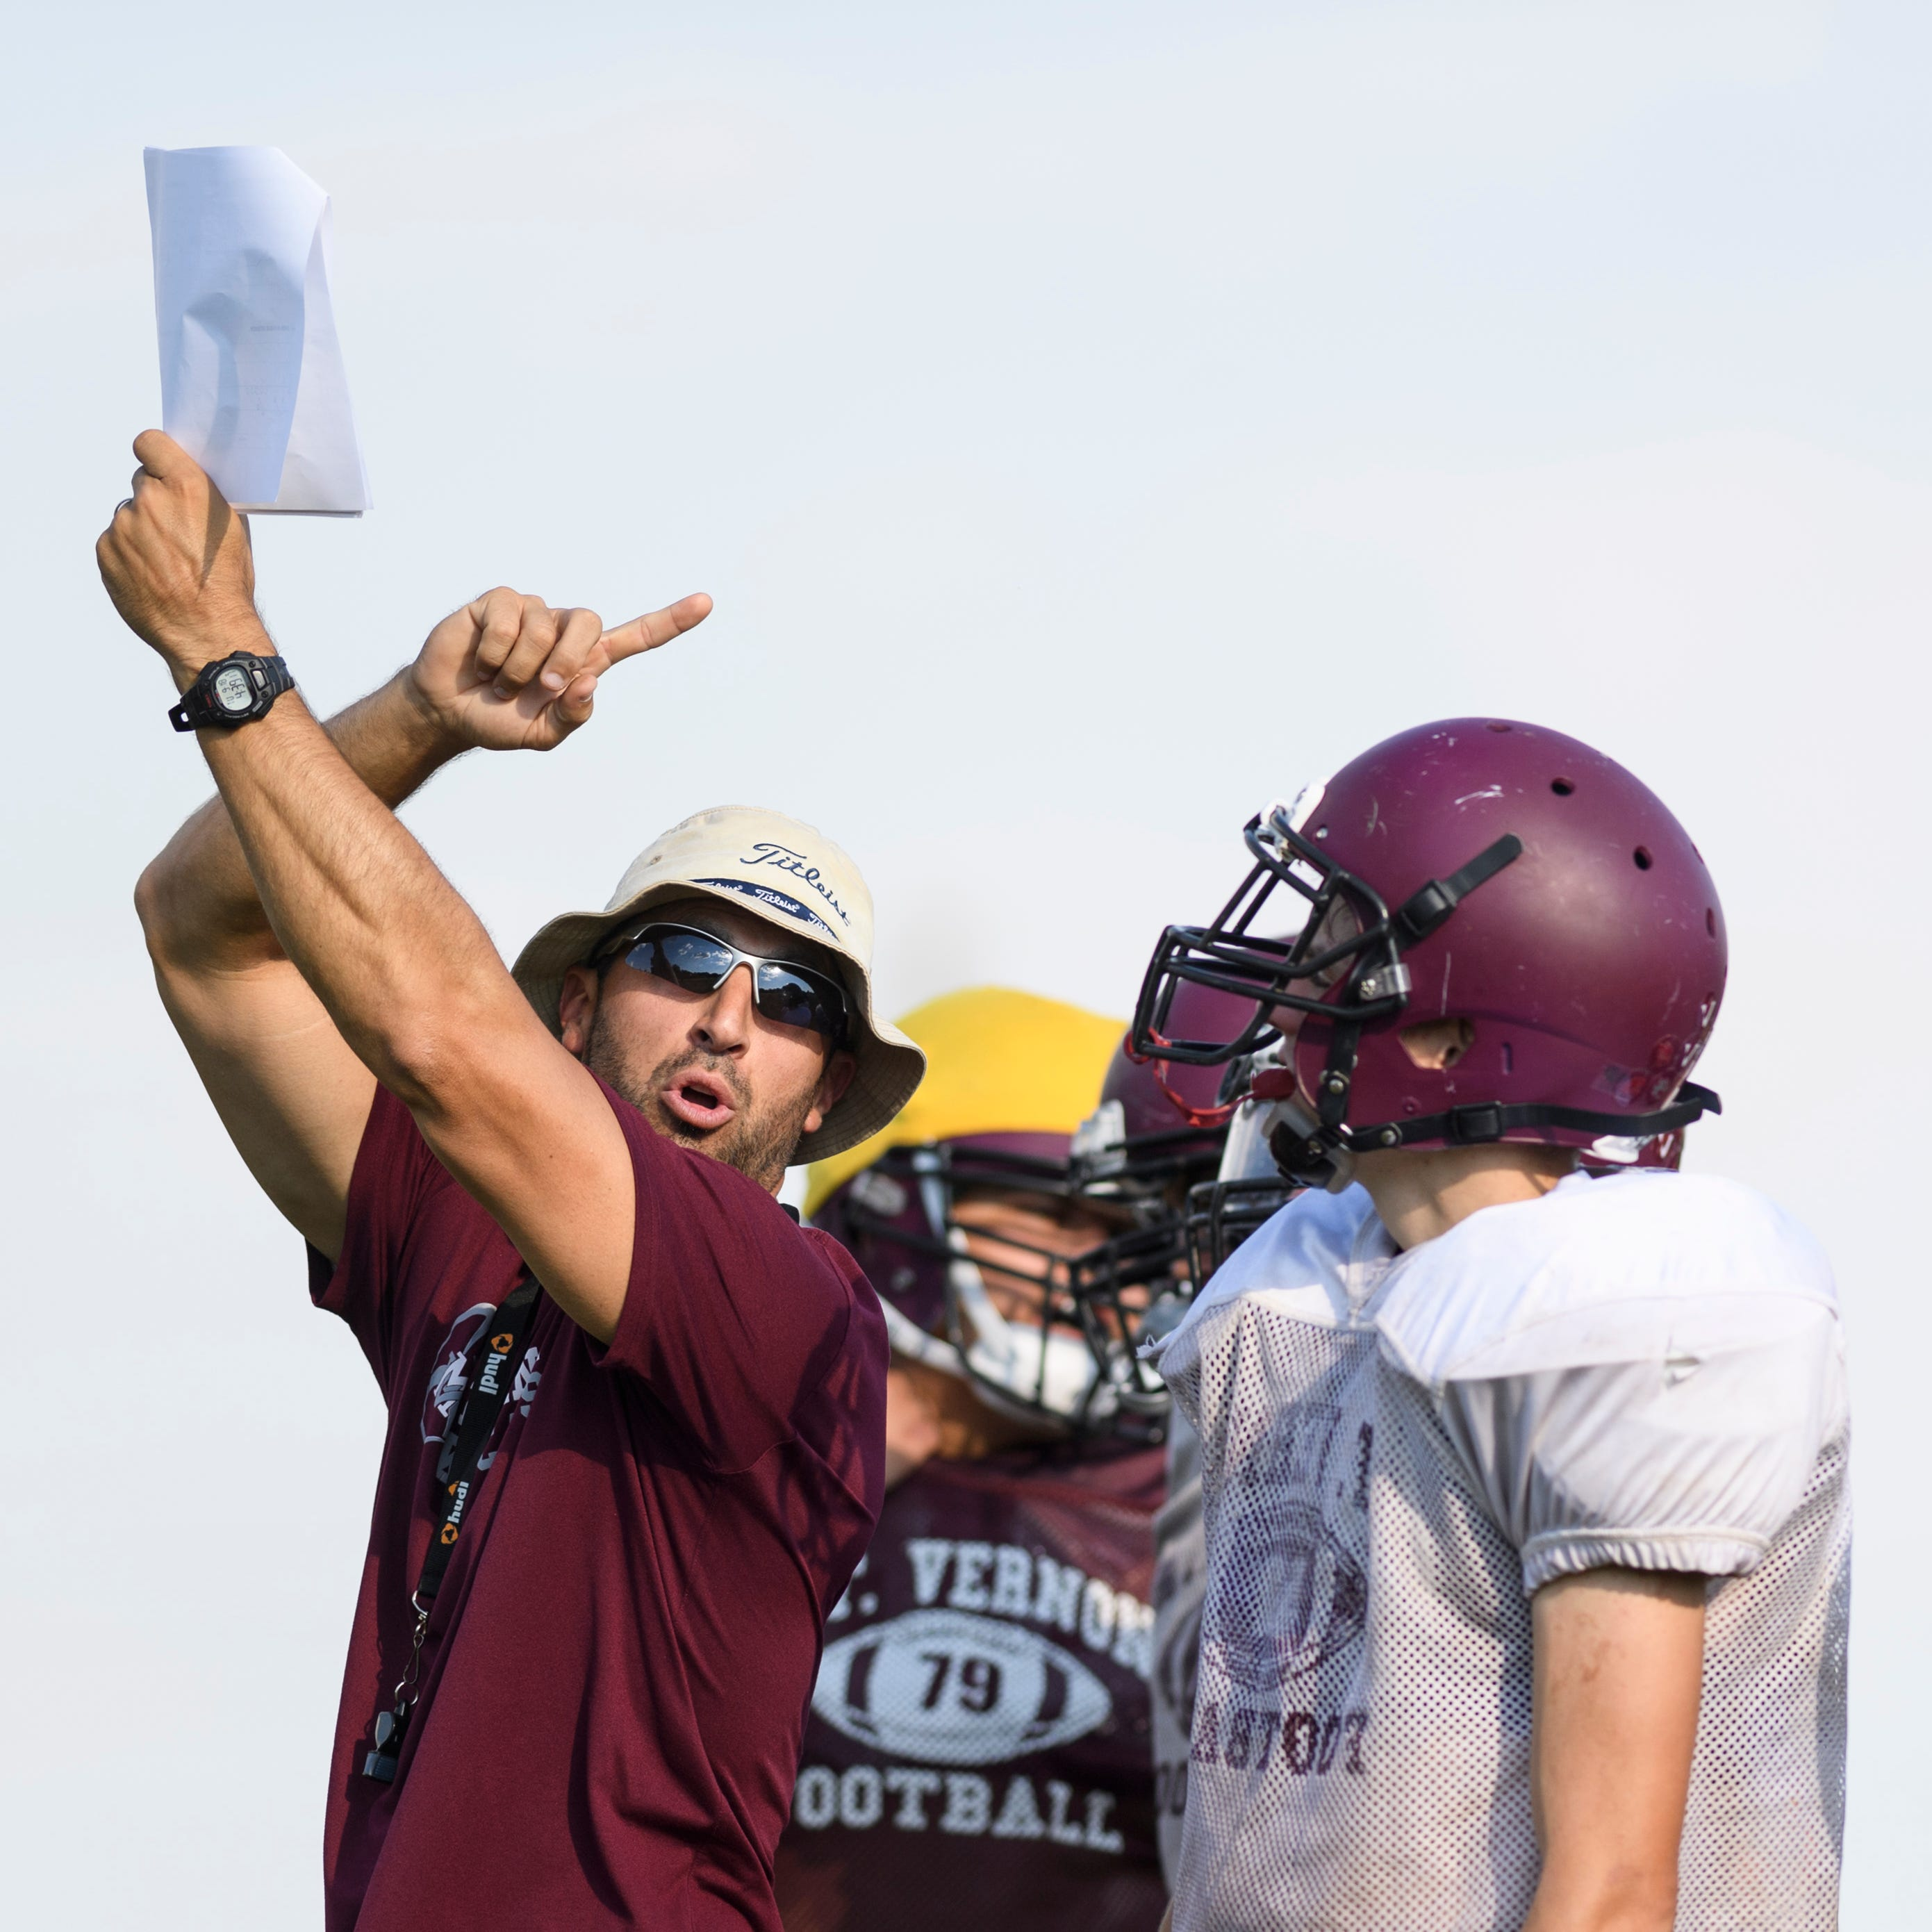 Cory Brunson working his magic with Mount Vernon football program